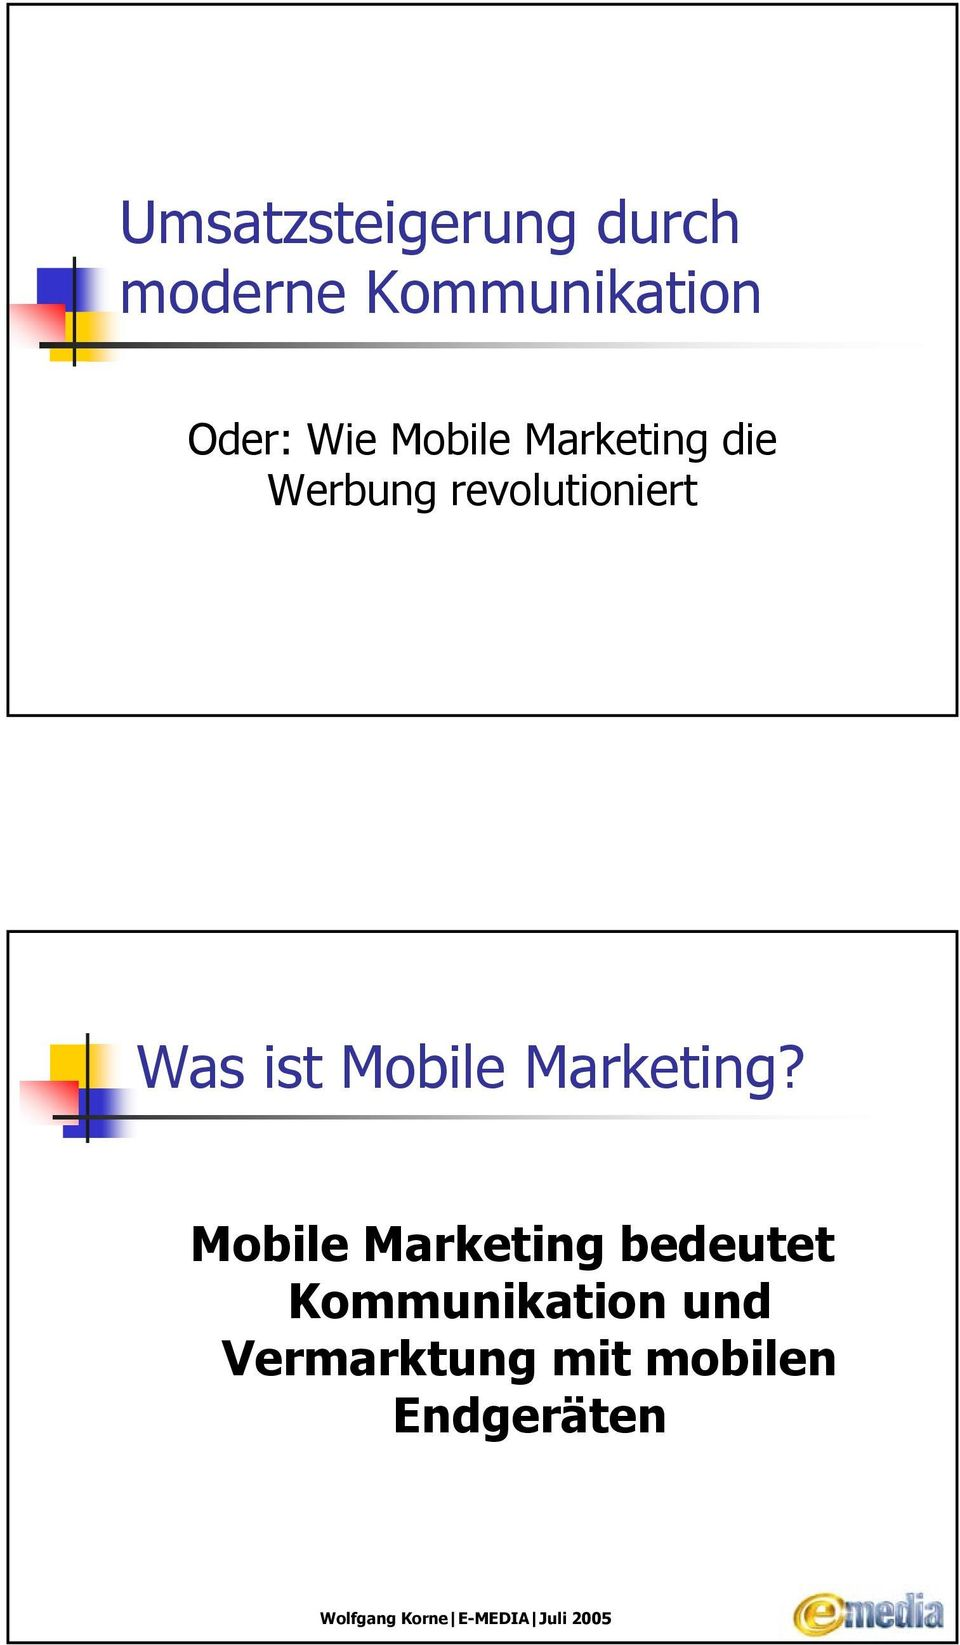 Was ist Mobile Marketing?